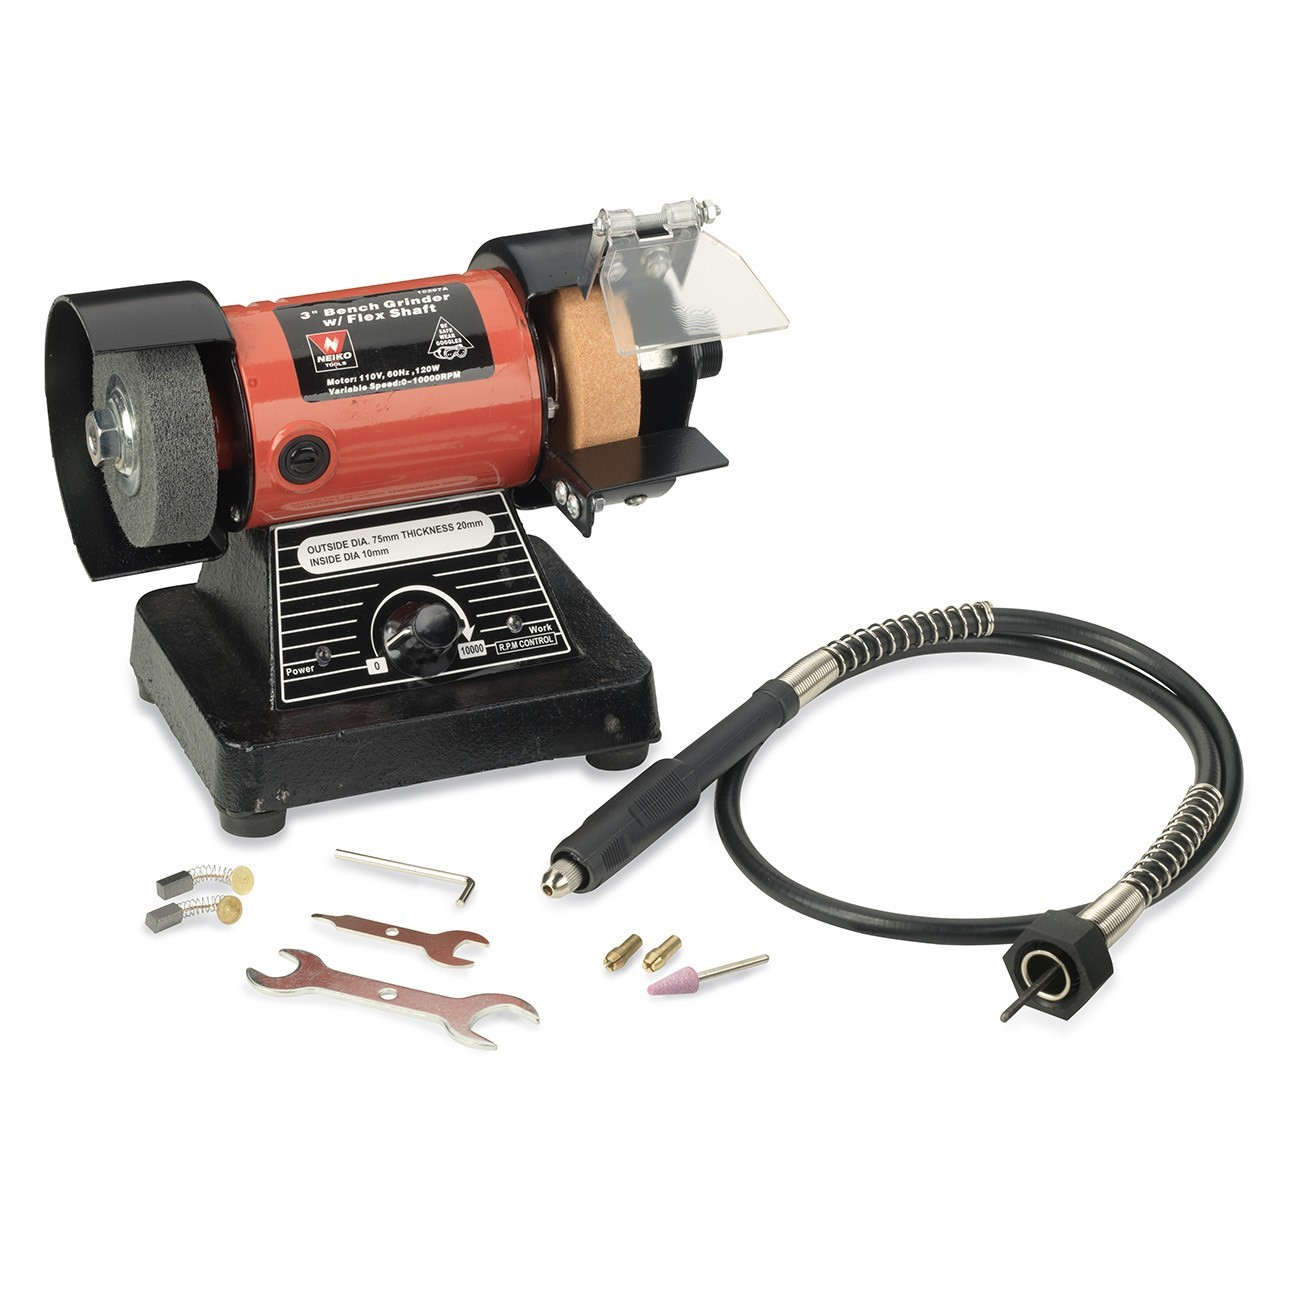 Neiko 10207A 3-Inch Mini Bench Grinder and Polisher with Flexible Shaft and Accessories | 120W | 0-10000 RPM